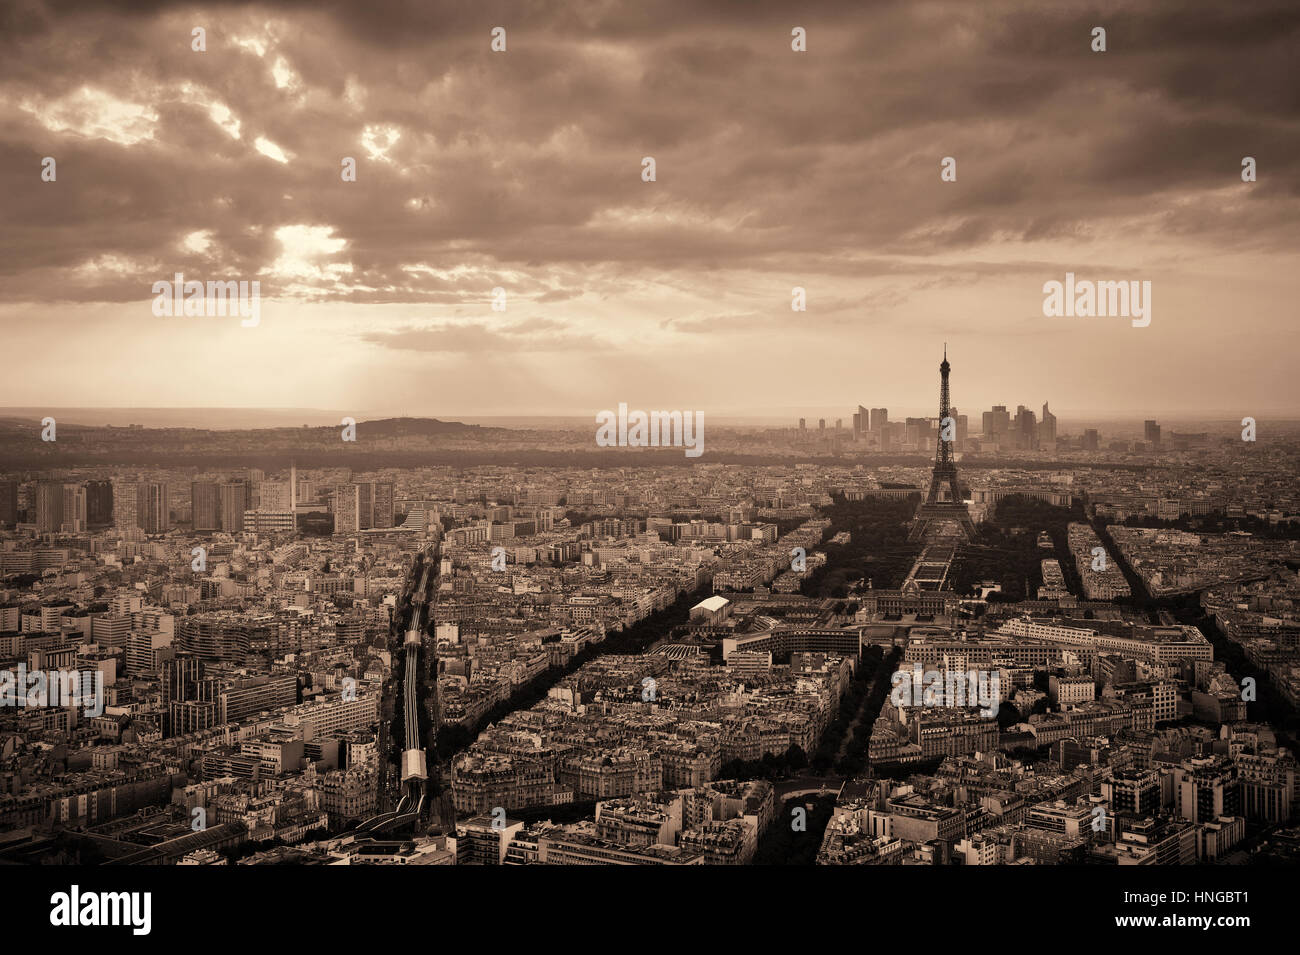 Paris city rooftop view with Eiffel Tower black and white. Stock Photo